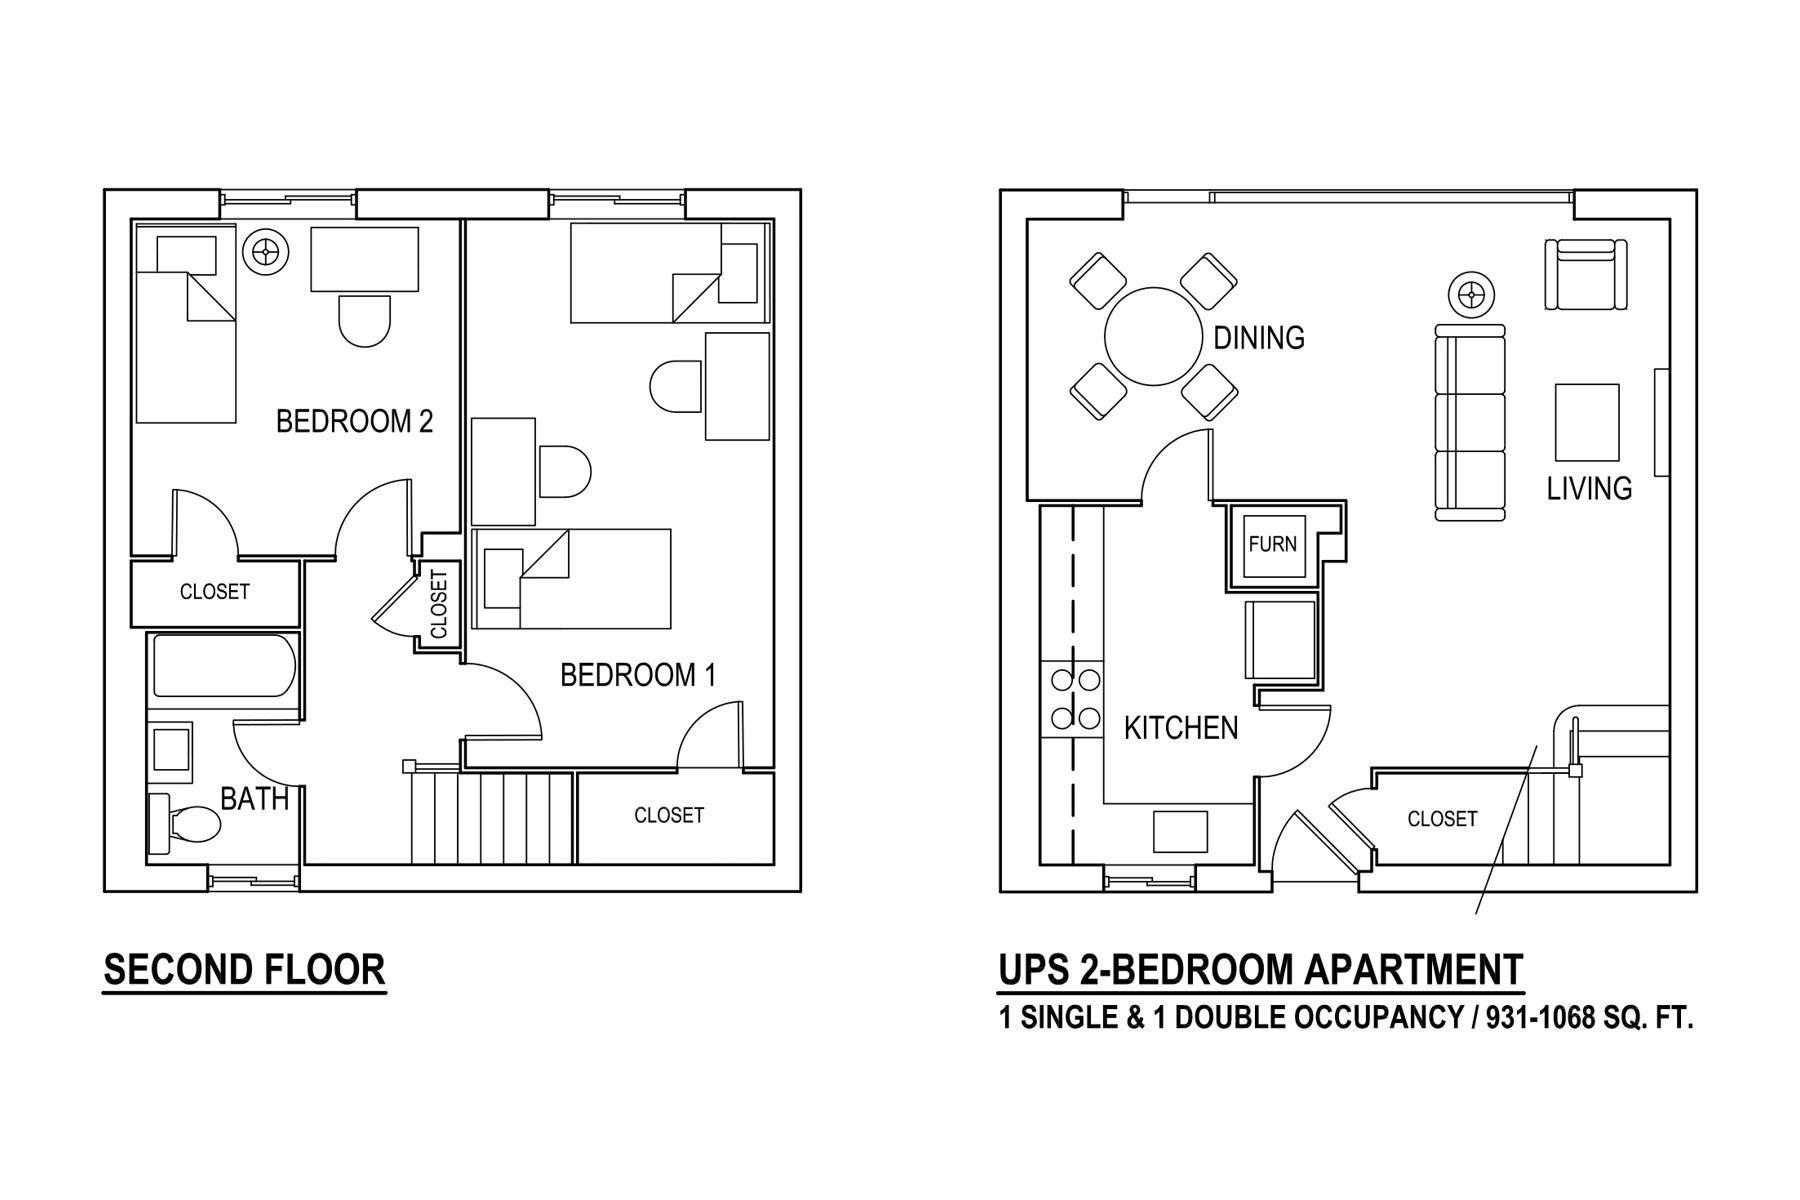 UPN 2-Bedroom Garden Apartment 1 Single & 1 Double Occupancy / 931-1068 sq. ft.